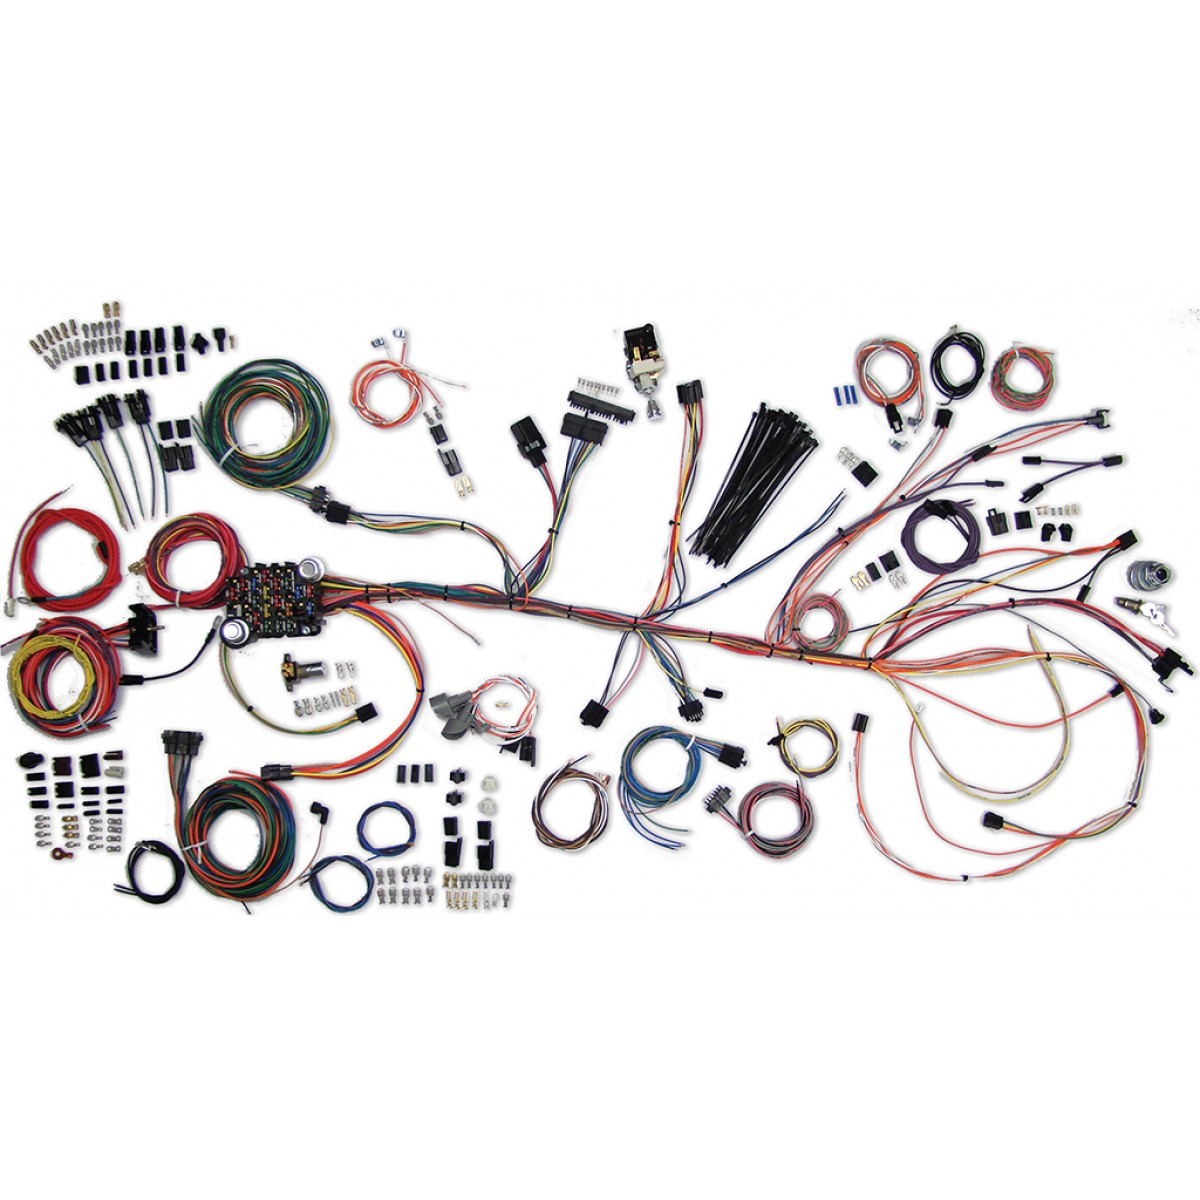 1967 El Camino Fuse Box Diagram: 1964-1967 El Camino Wiring Harness Kit - El Camino Wiring - Part rh:code510.com,Design